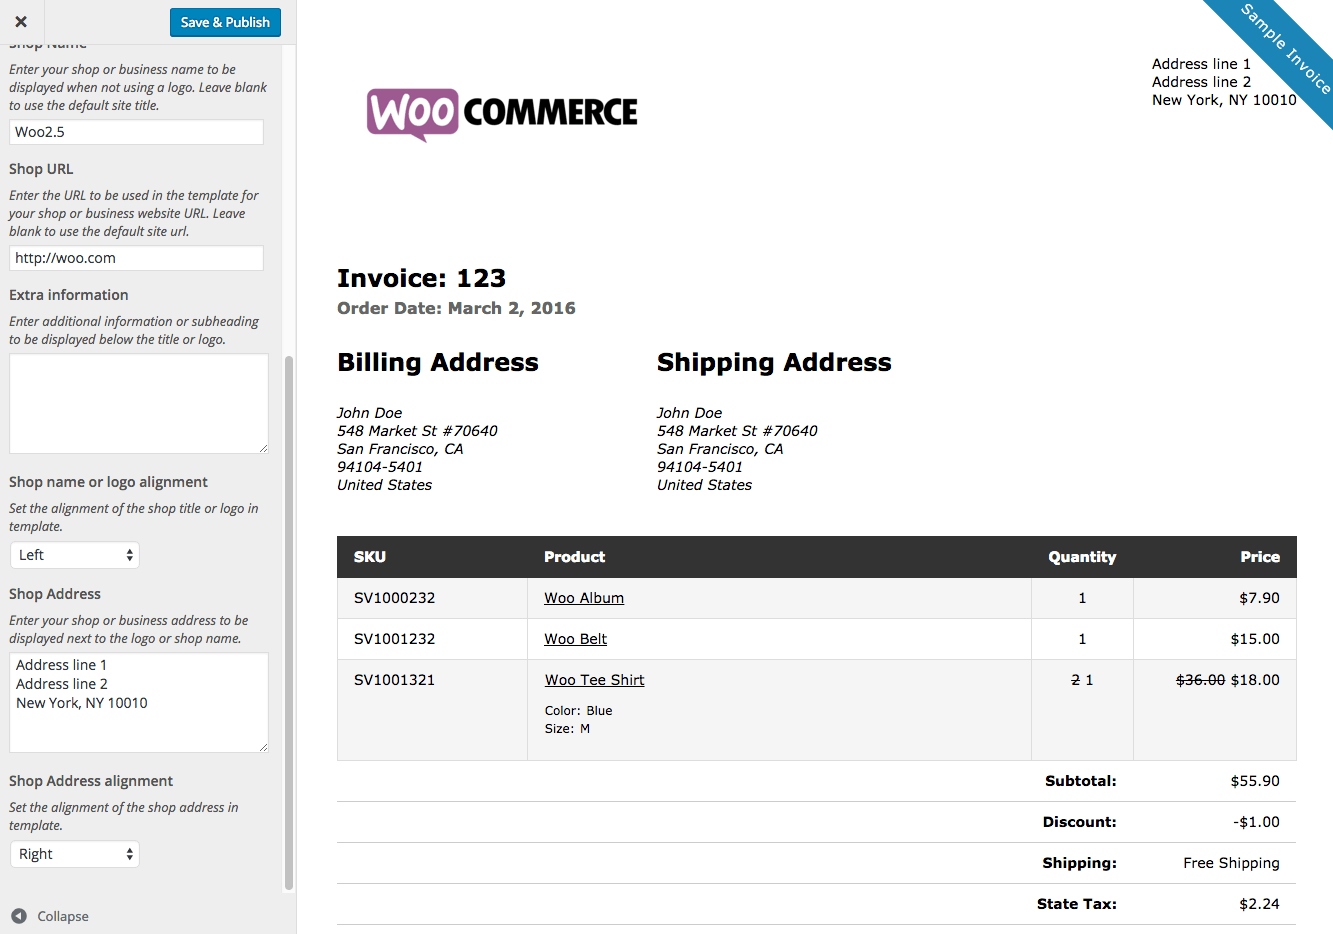 Totallocalus  Splendid Woocommerce Print Invoices Amp Packing Lists  Woocommerce Docs With Foxy Woocommerce Print Invoices  Packing Lists Customizer With Amazing Samples Of Invoices For Payment Also Invoice Printable In Addition Blank Service Invoice Template And Generic Commercial Invoice As Well As Paper Invoice Additionally Car Invoice Prices By Vin From Docswoocommercecom With Totallocalus  Foxy Woocommerce Print Invoices Amp Packing Lists  Woocommerce Docs With Amazing Woocommerce Print Invoices  Packing Lists Customizer And Splendid Samples Of Invoices For Payment Also Invoice Printable In Addition Blank Service Invoice Template From Docswoocommercecom